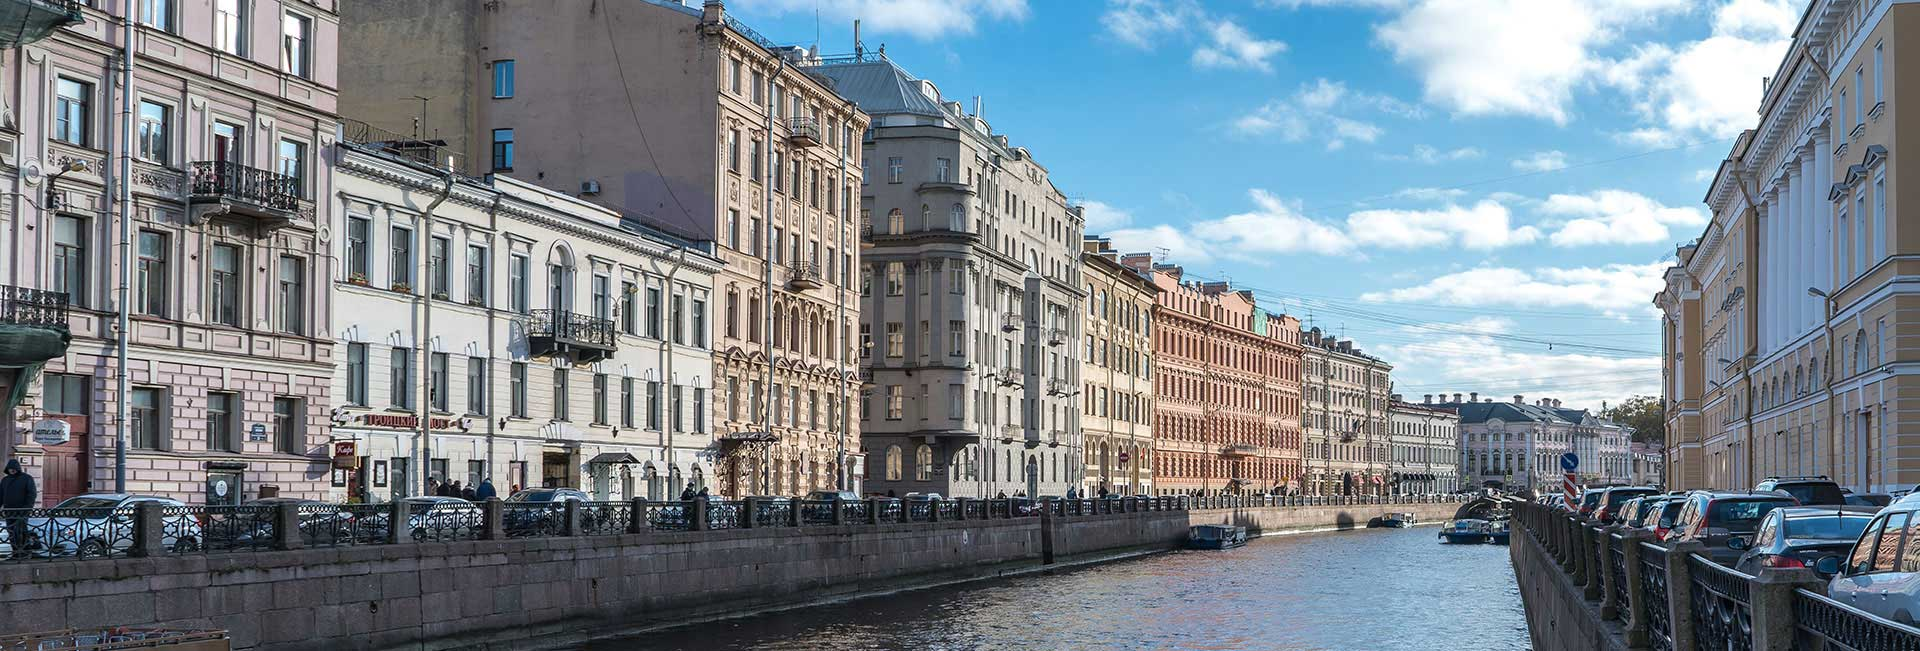 Moika river in St. Petersburg, Russia. Photo credit: Jered Gorman